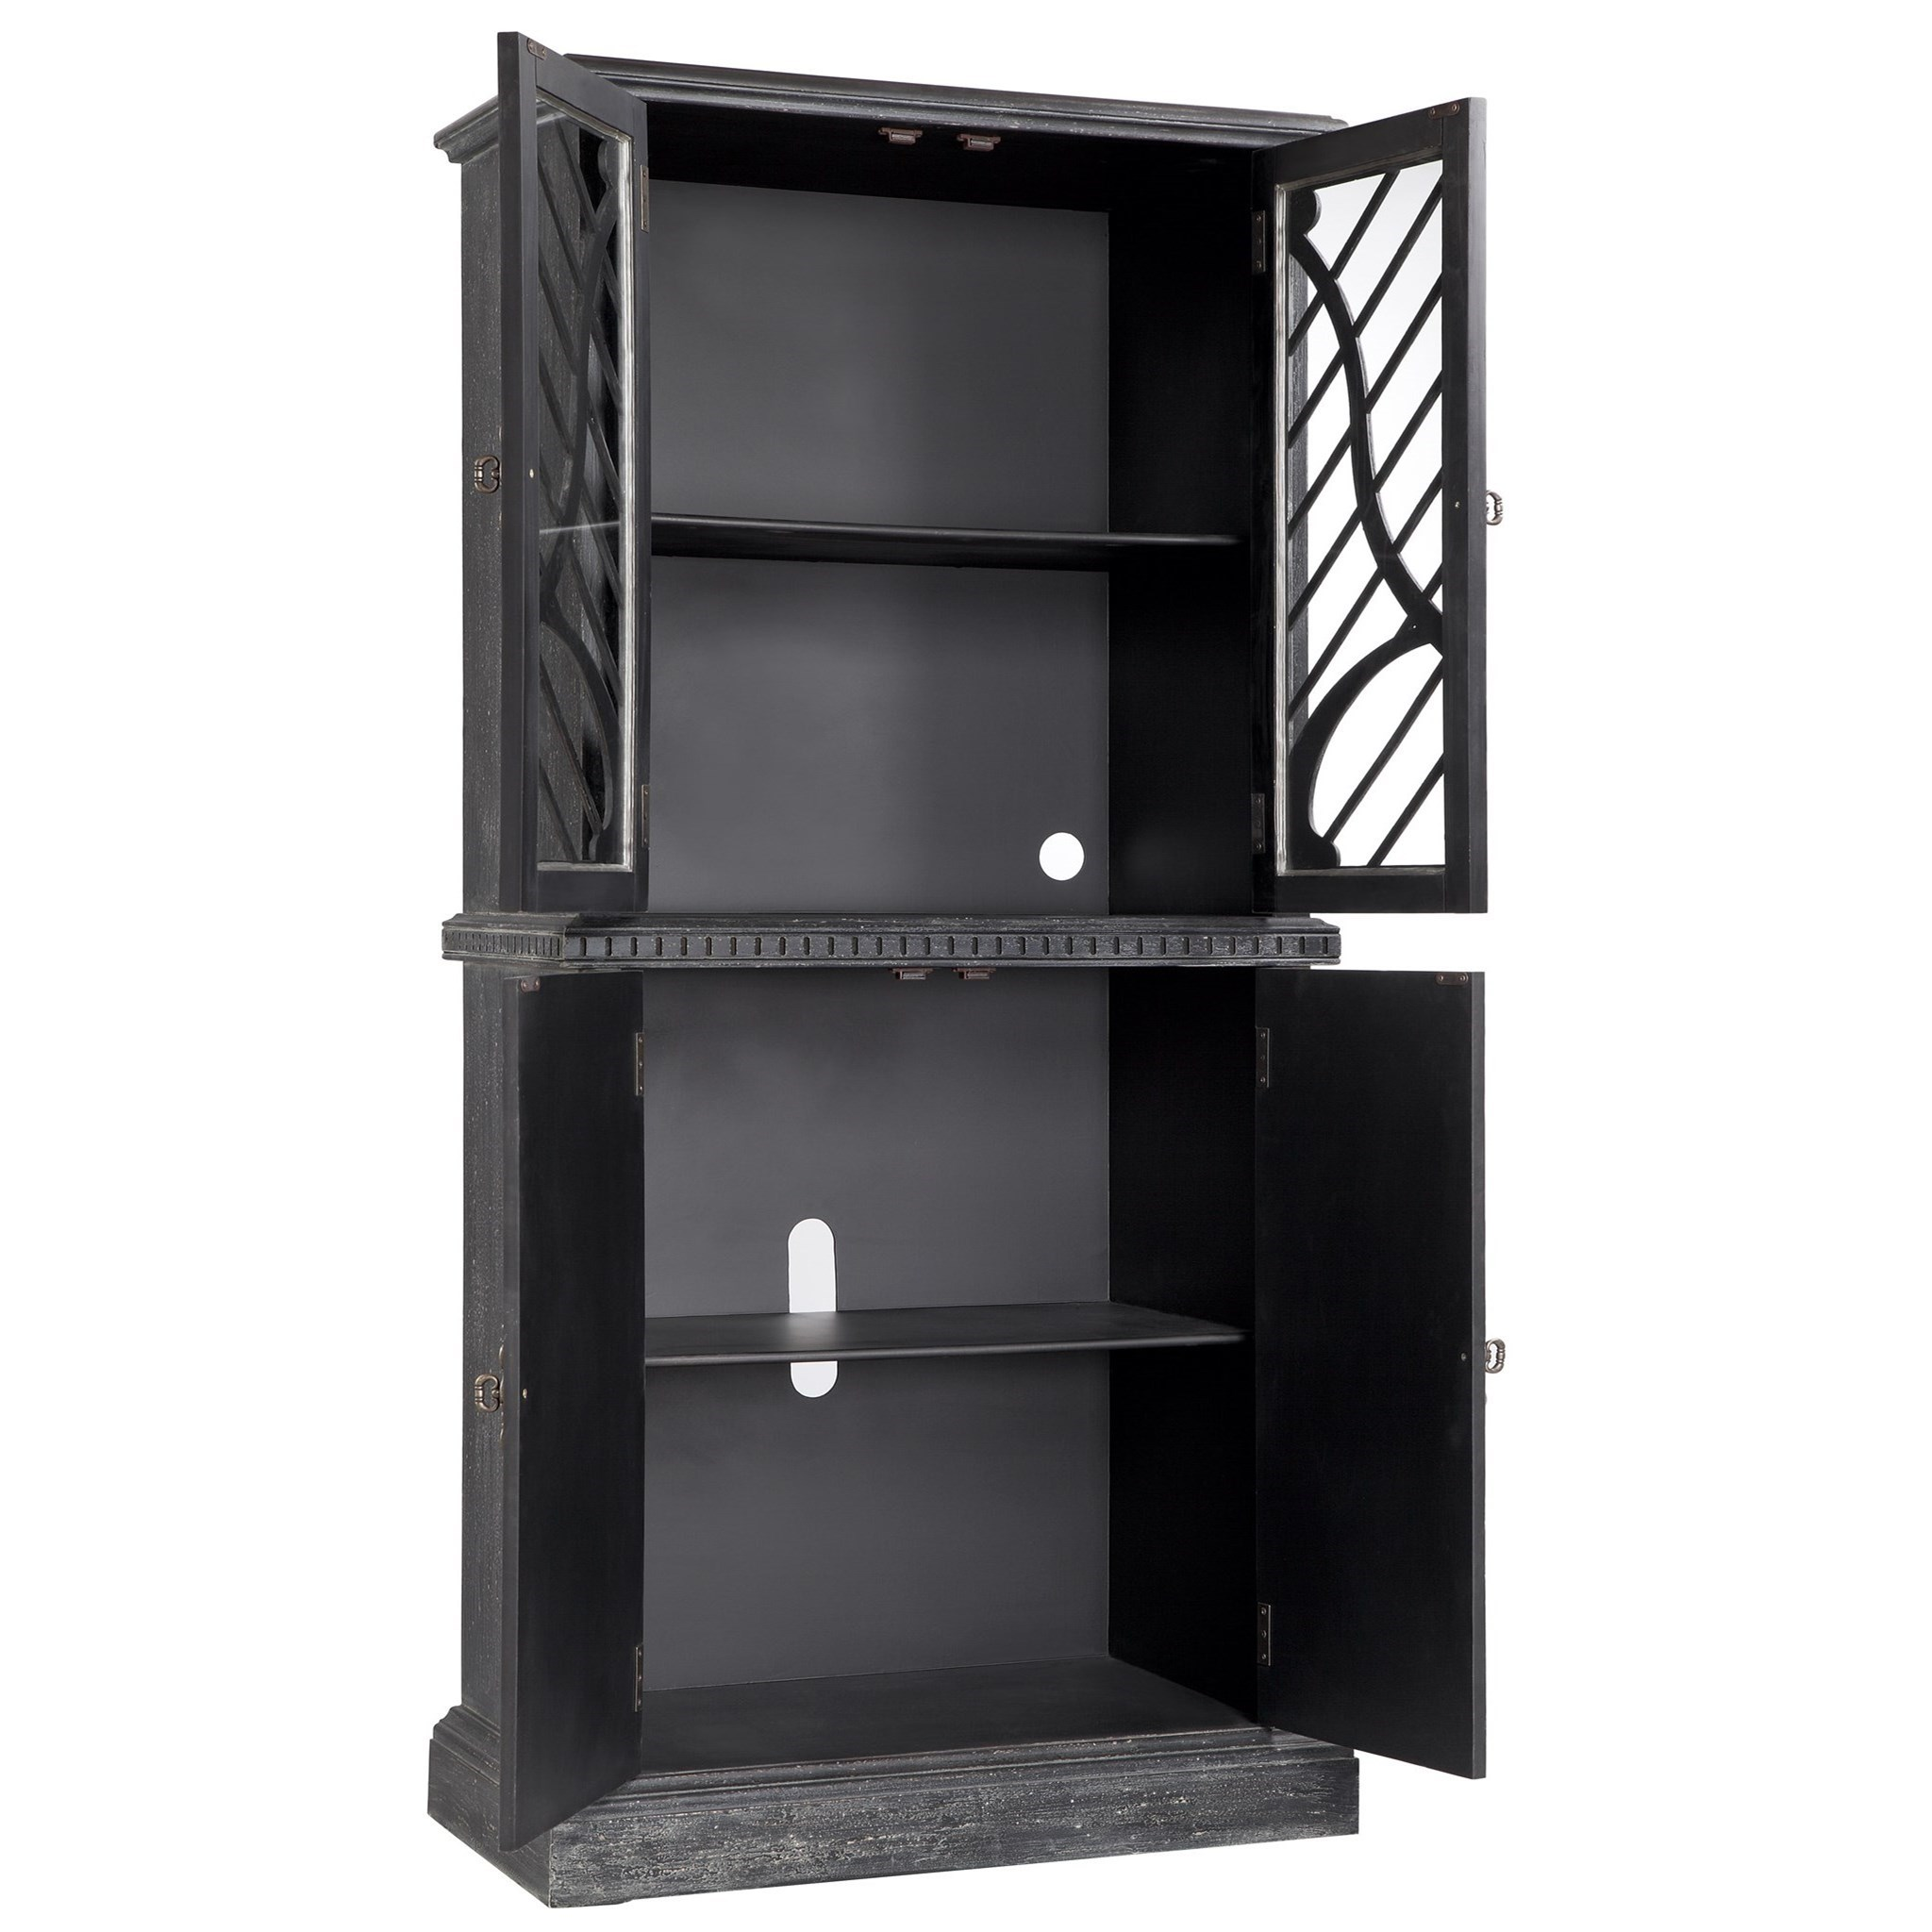 Cabinets 4 door tall cabinet morris home accent chests for Morris home